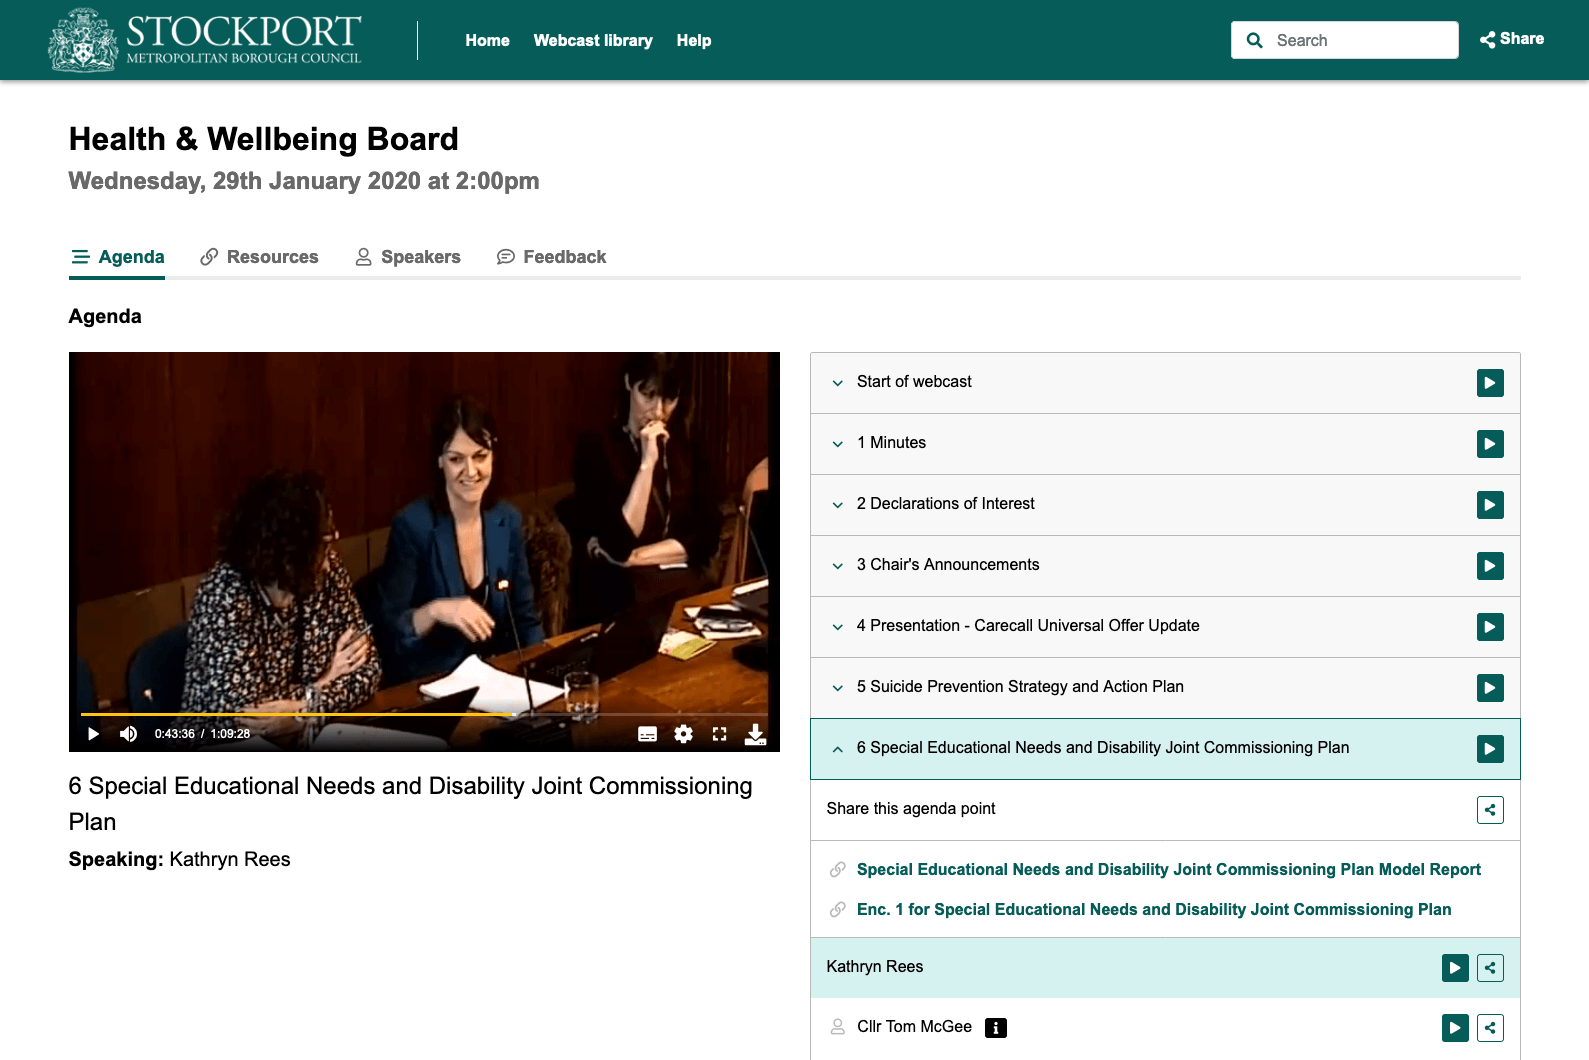 Stockport health and wellbeing board webcast